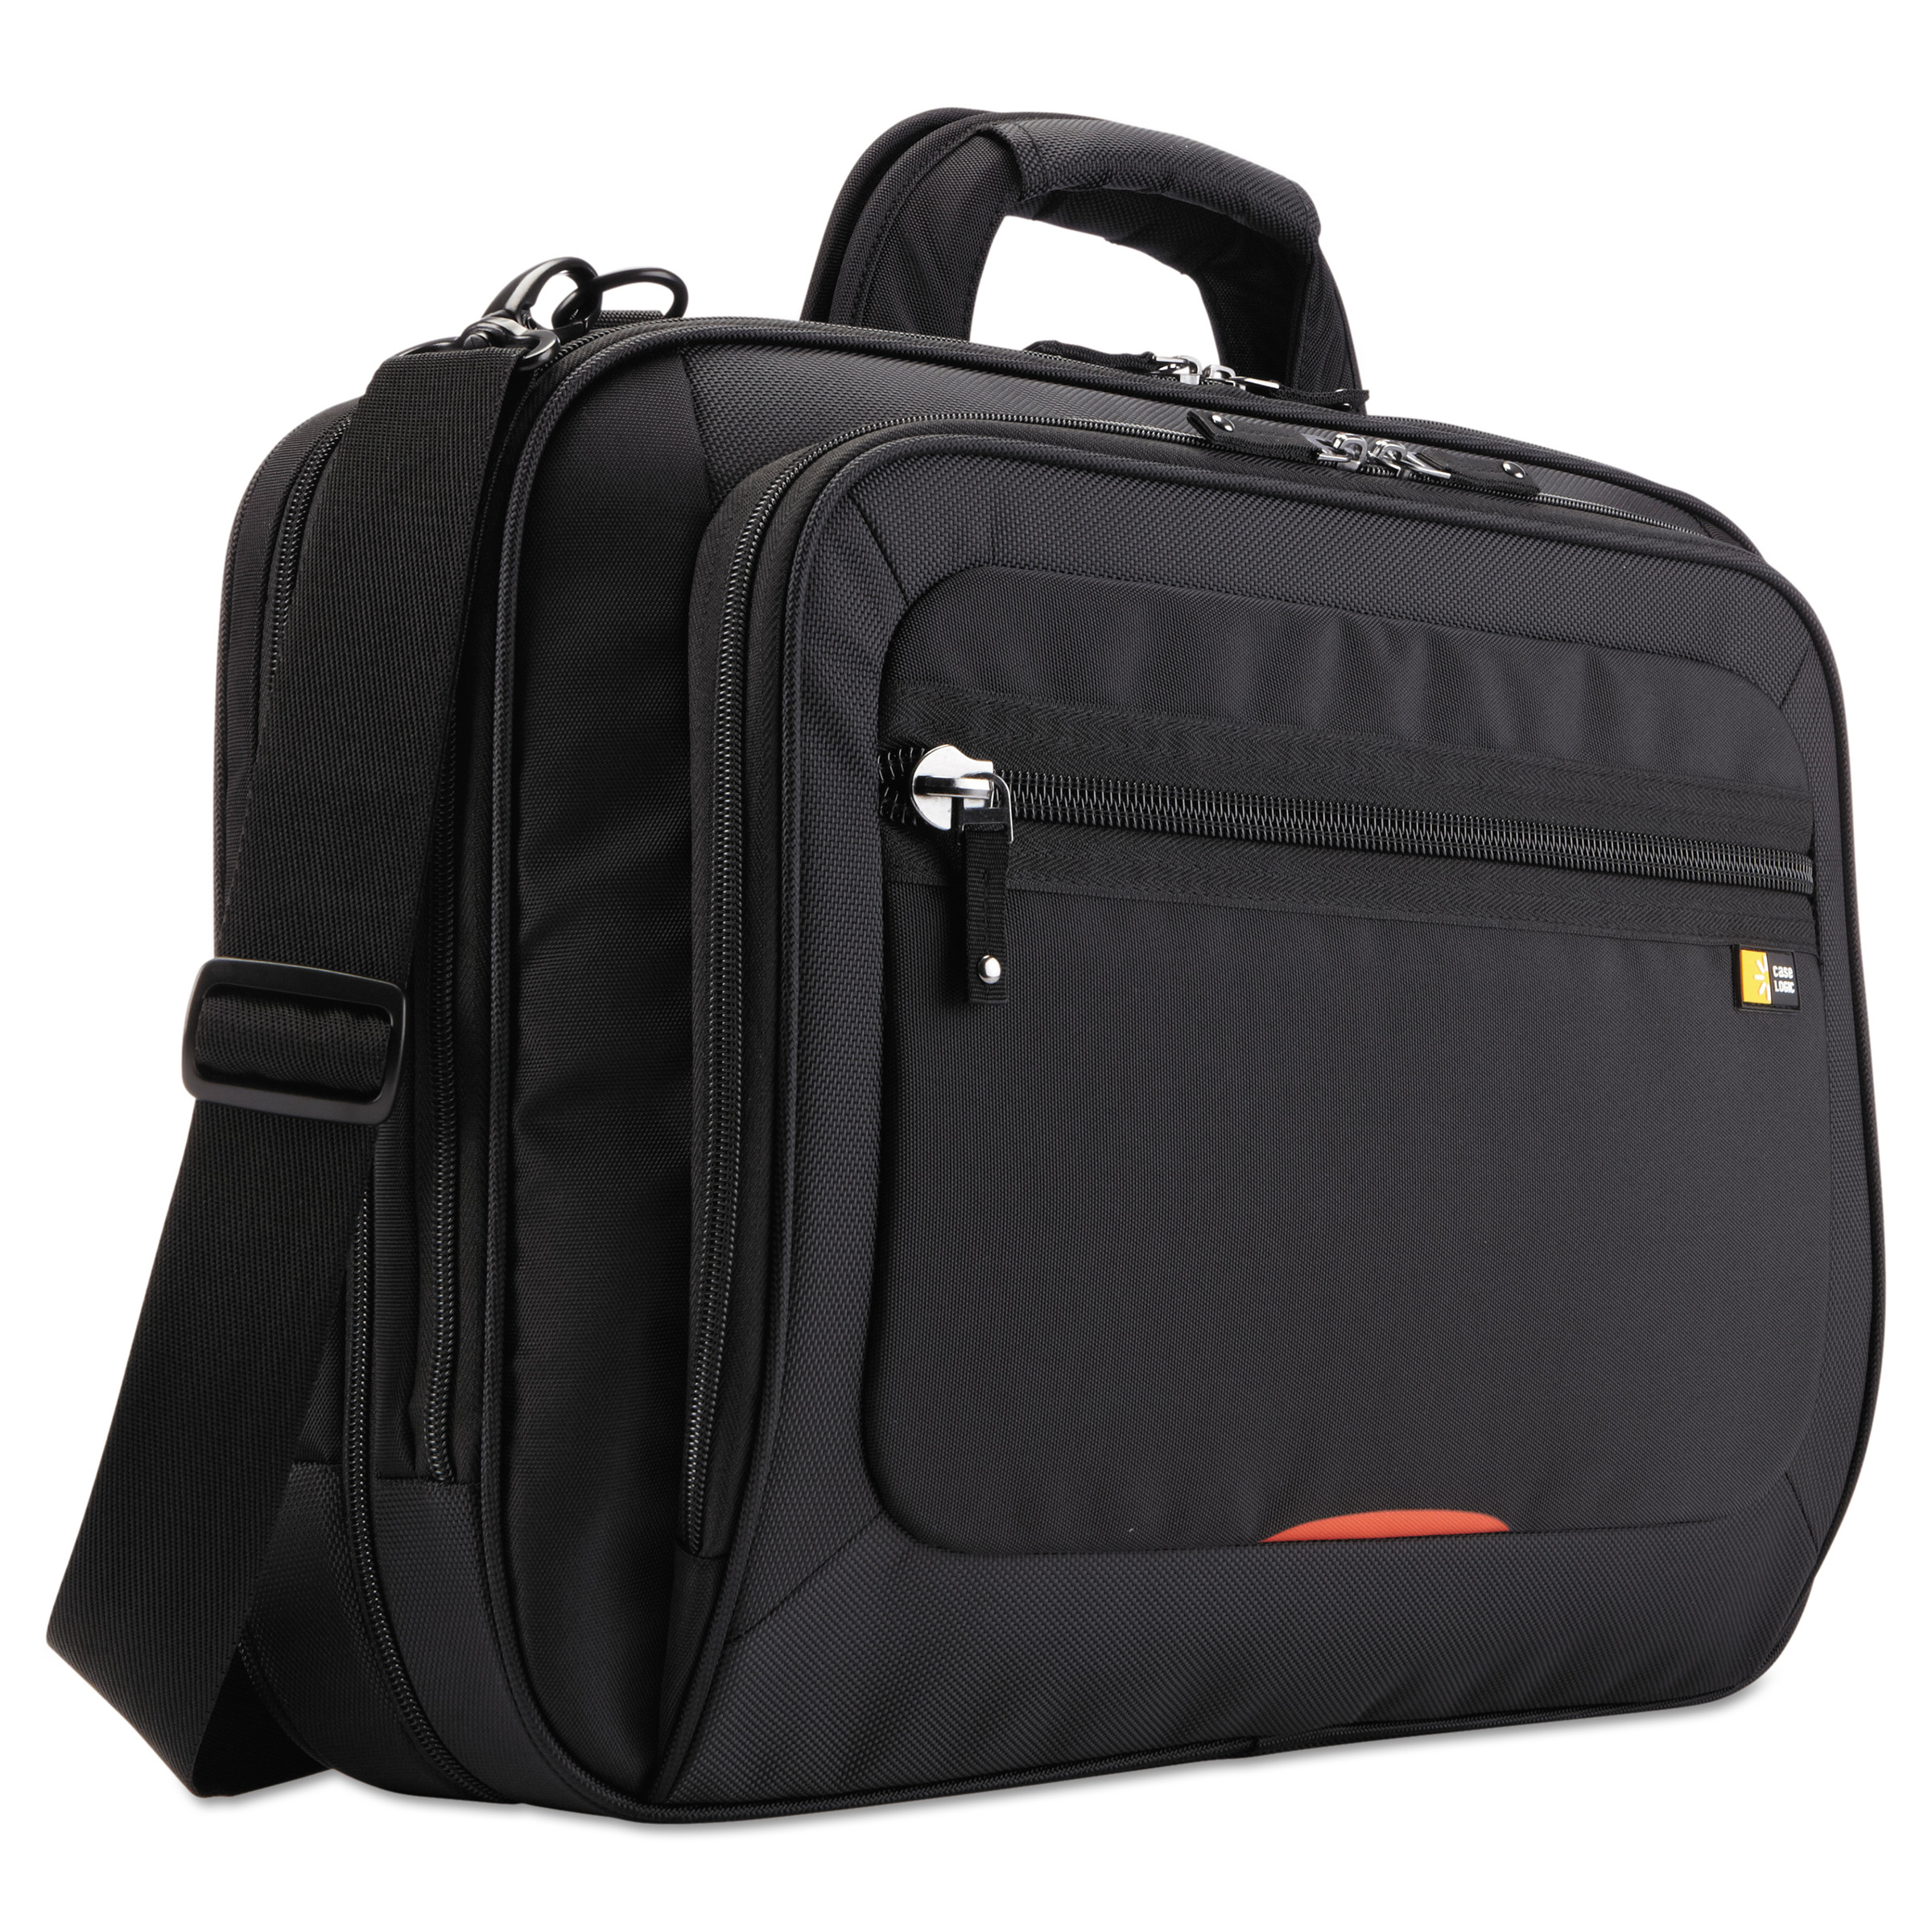 "Case Logic 17"" Checkpoint Friendly Laptop Case, 5 1 2 x 13 1 4 x 18, Black by Case Logic"